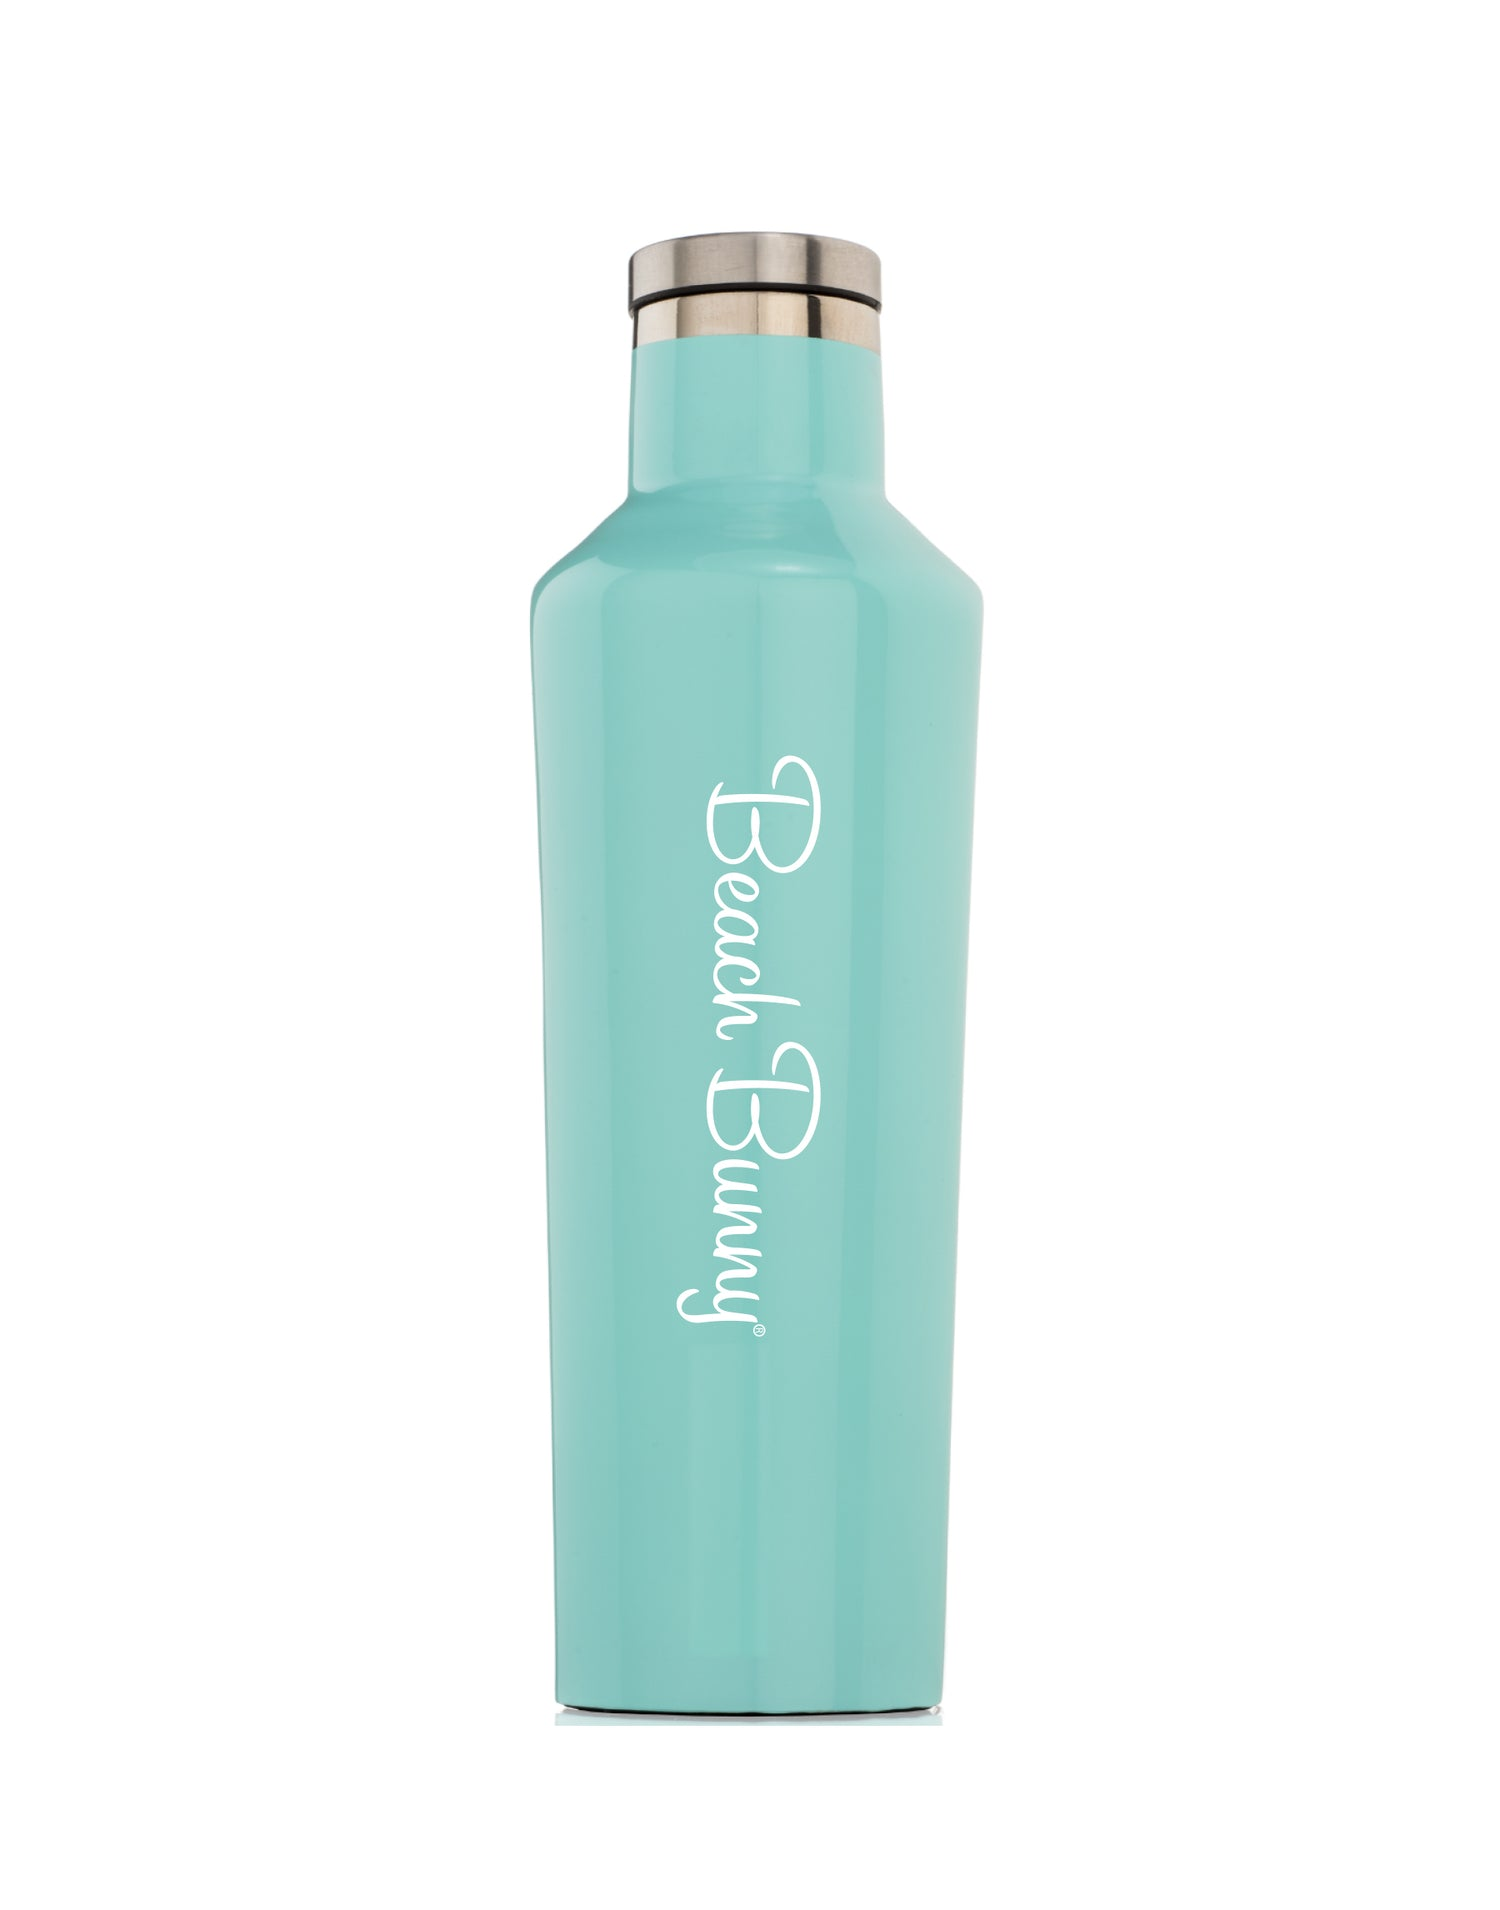 Corkcicle x Beach Bunny - Gloss Turquoise Canteen (16 oz)